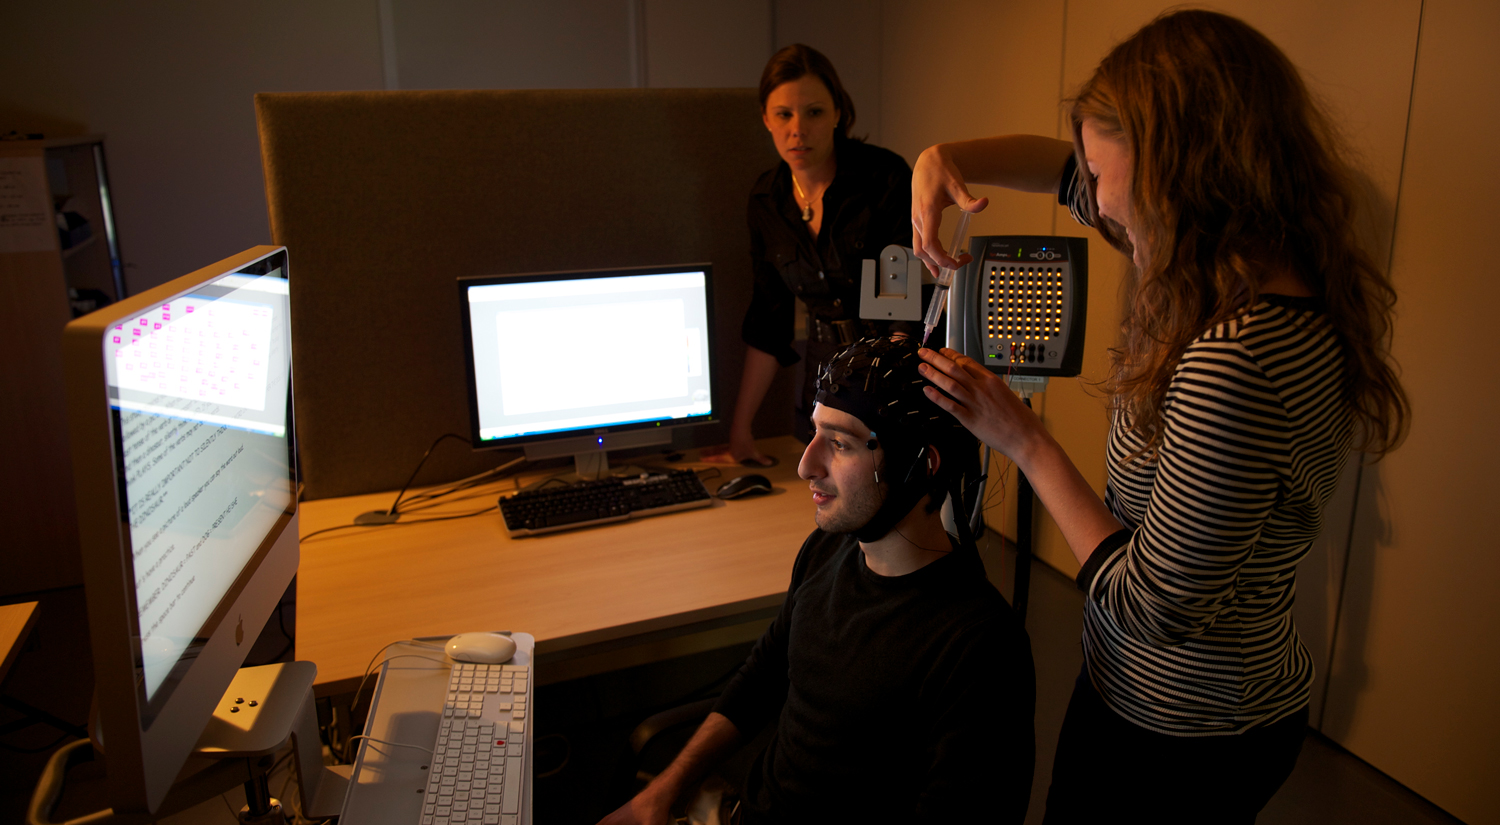 A student wearing an EEG cap is sitting in front of a large computer monitor. A second student is standing next to them, injecting some gel in to one of the cap sensors. Professor Silke Paulmann from the Department of Psychology is standing in the background, next to a second computer, watching them.